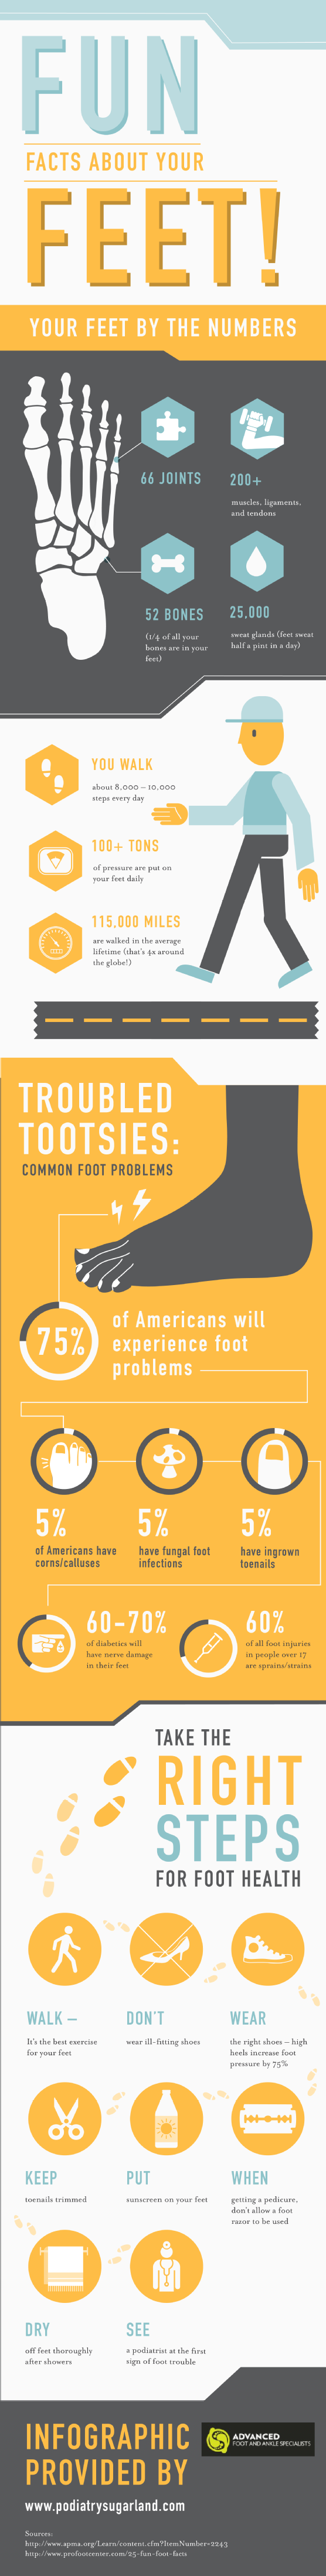 Fun Facts About Your Feet   #Infographic